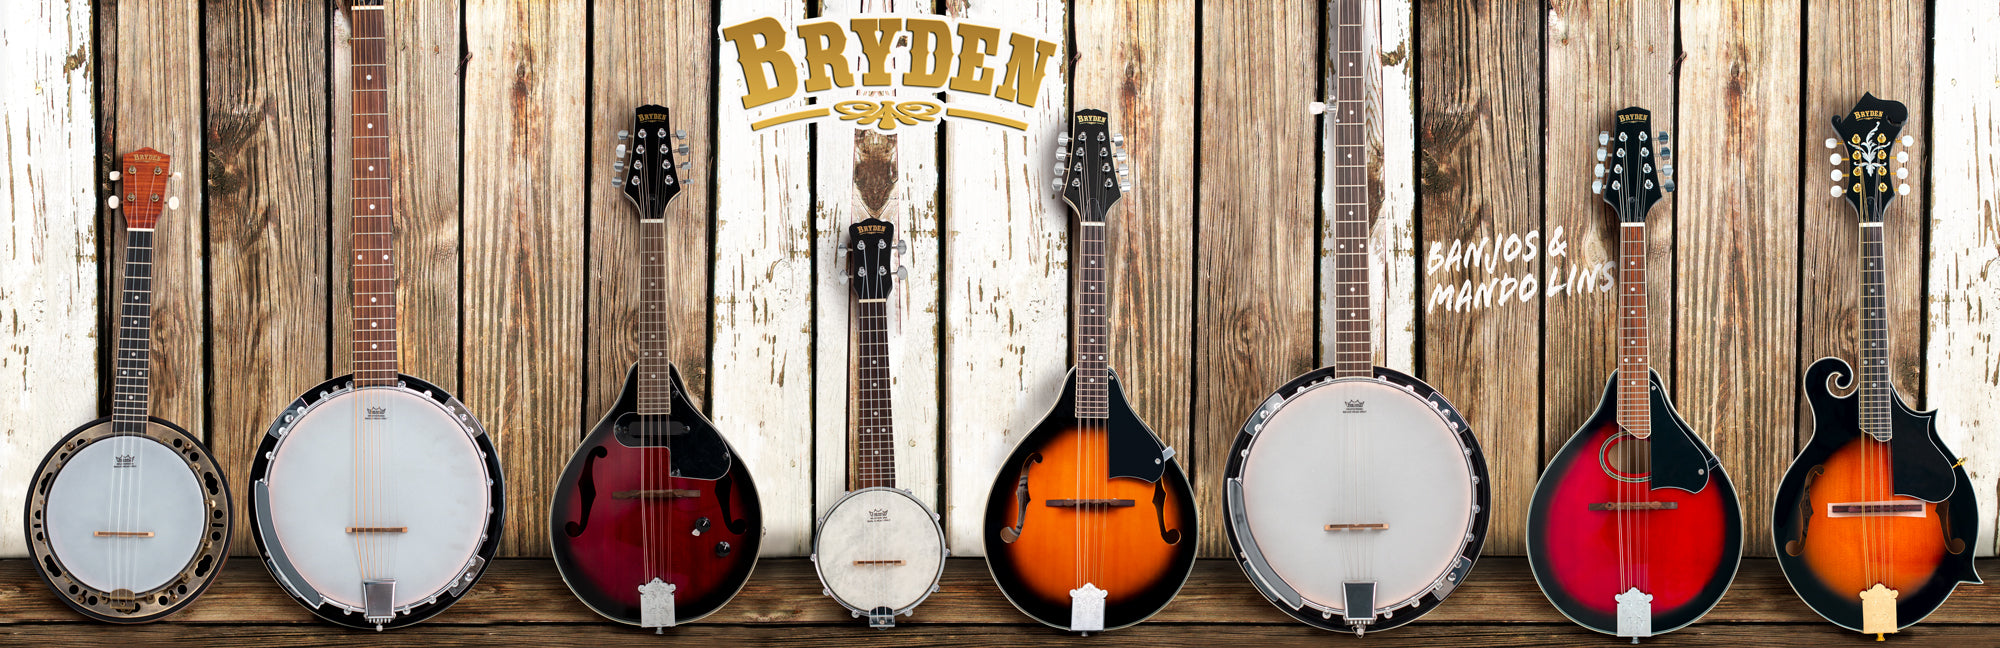 Bryden Mandolins and Banjos